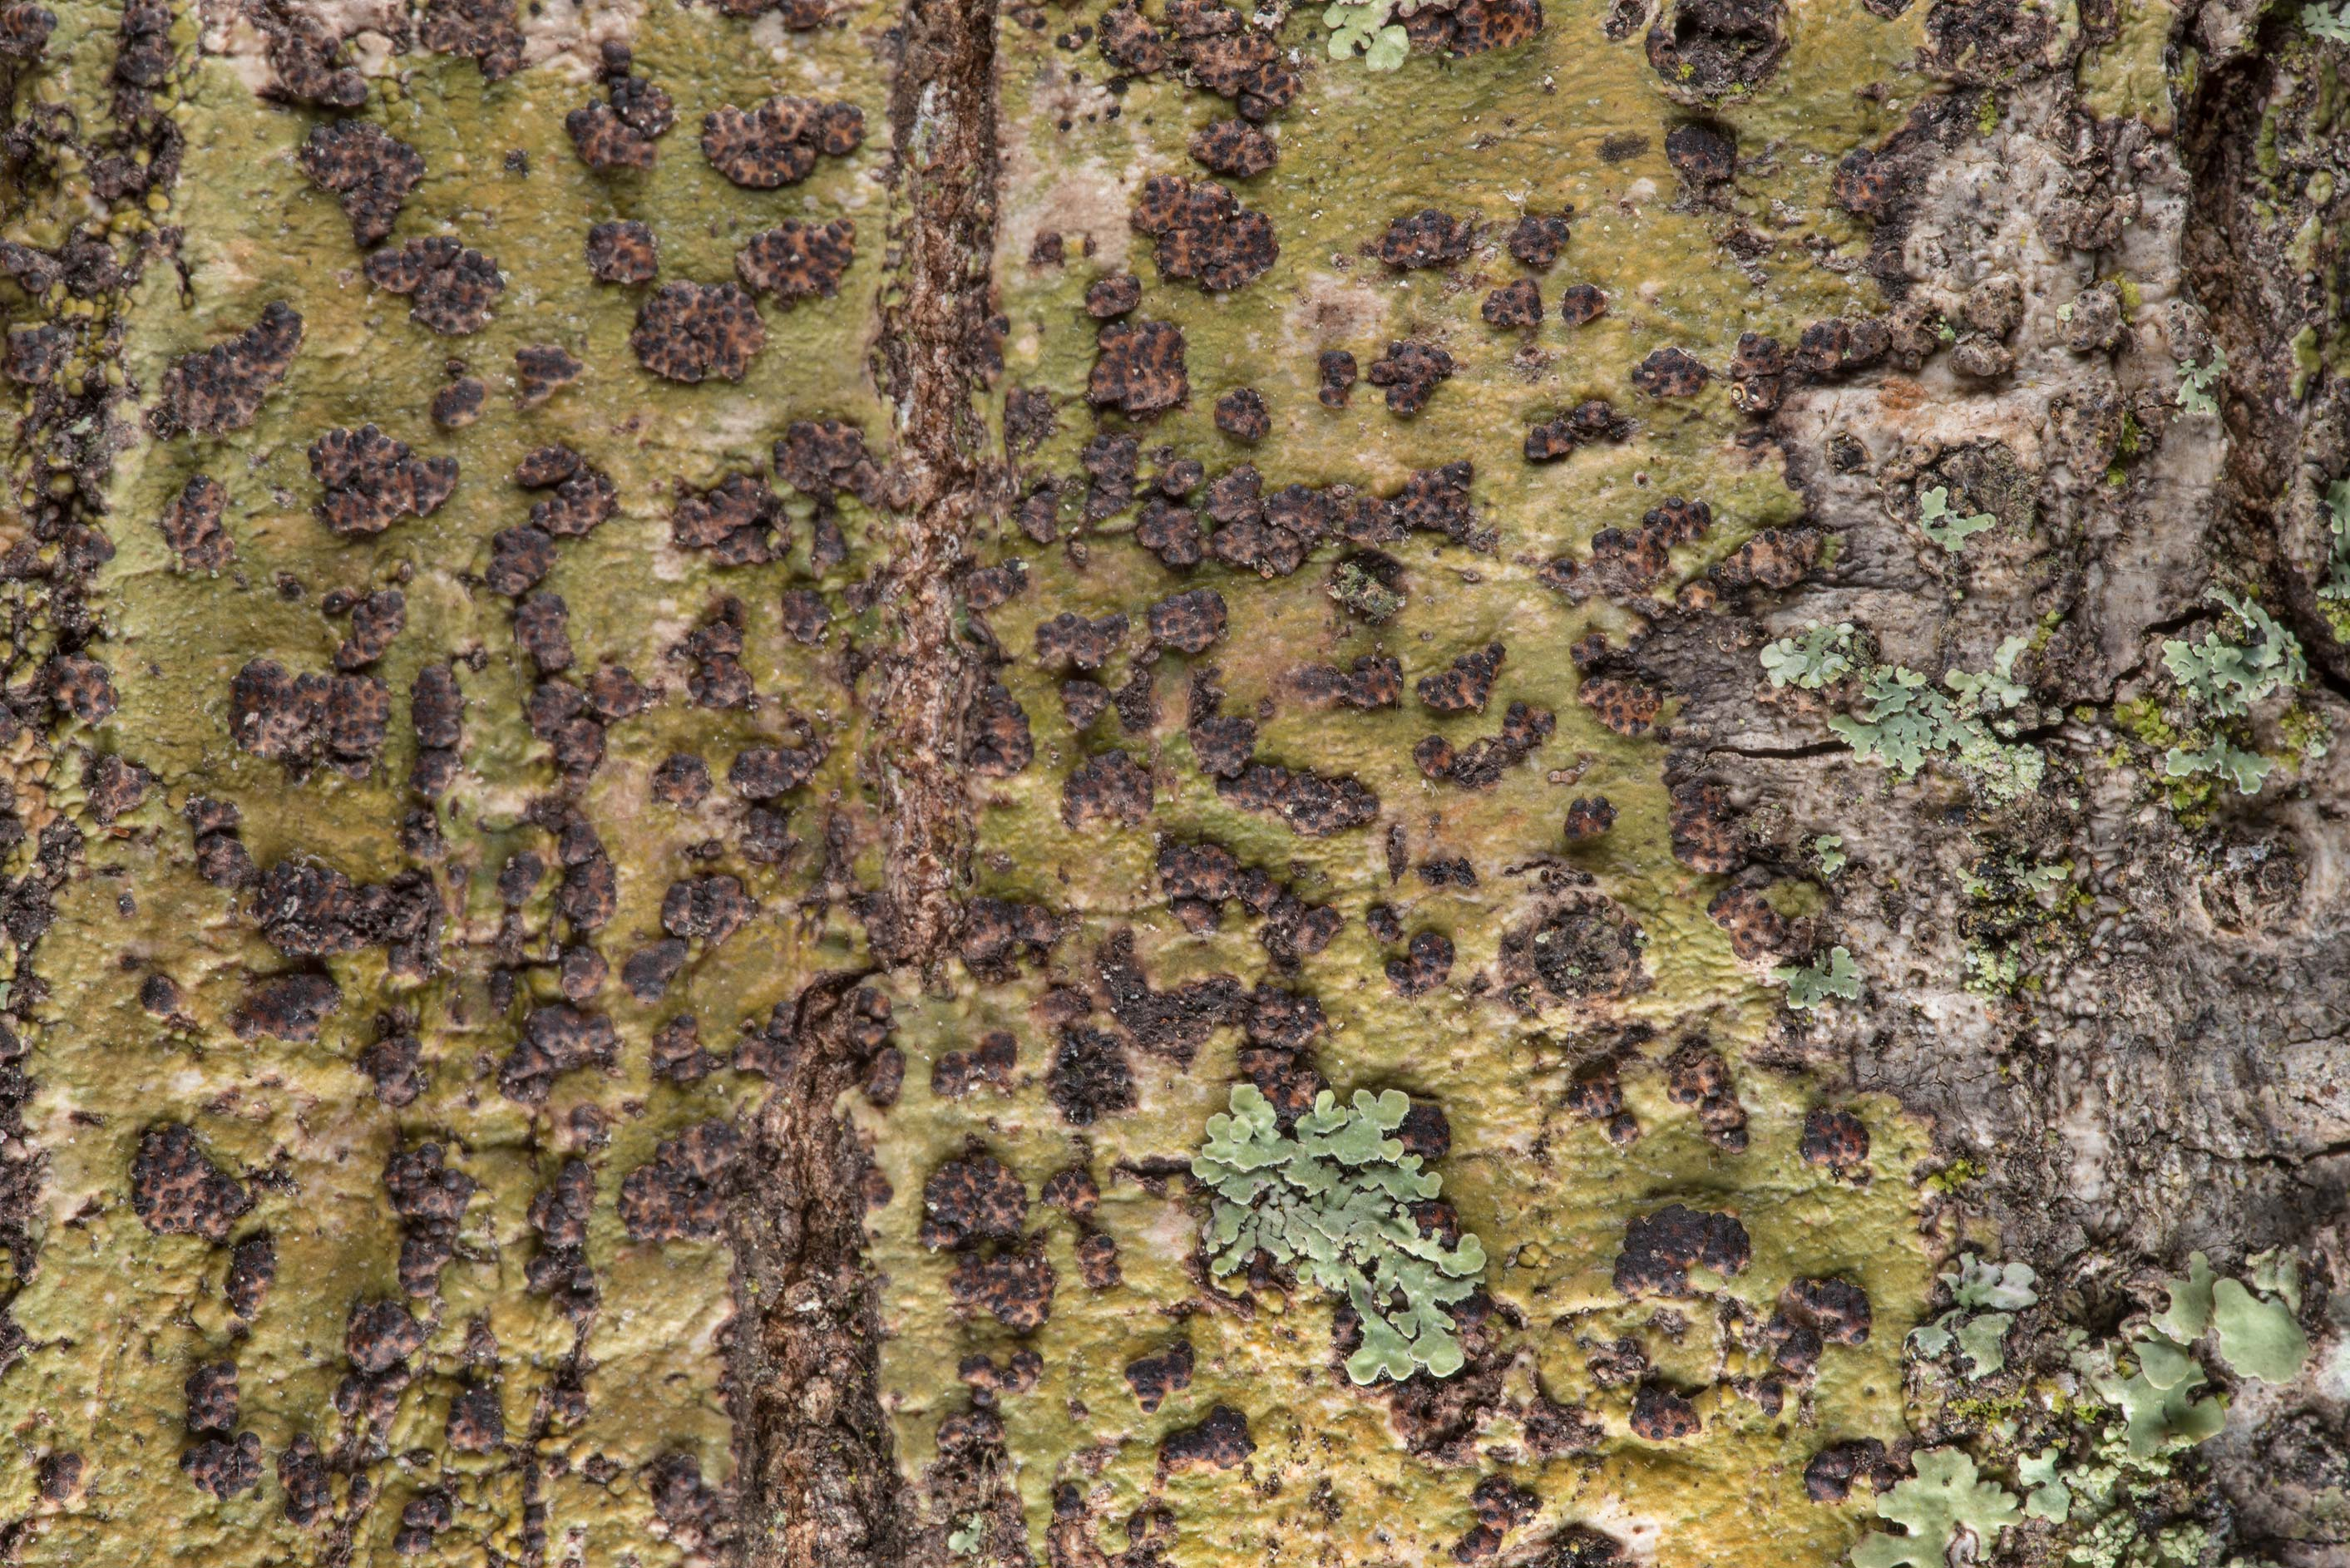 Warty lichen Trypethelium carolinianum (Bathelium...National Forest near Huntsville. Texas